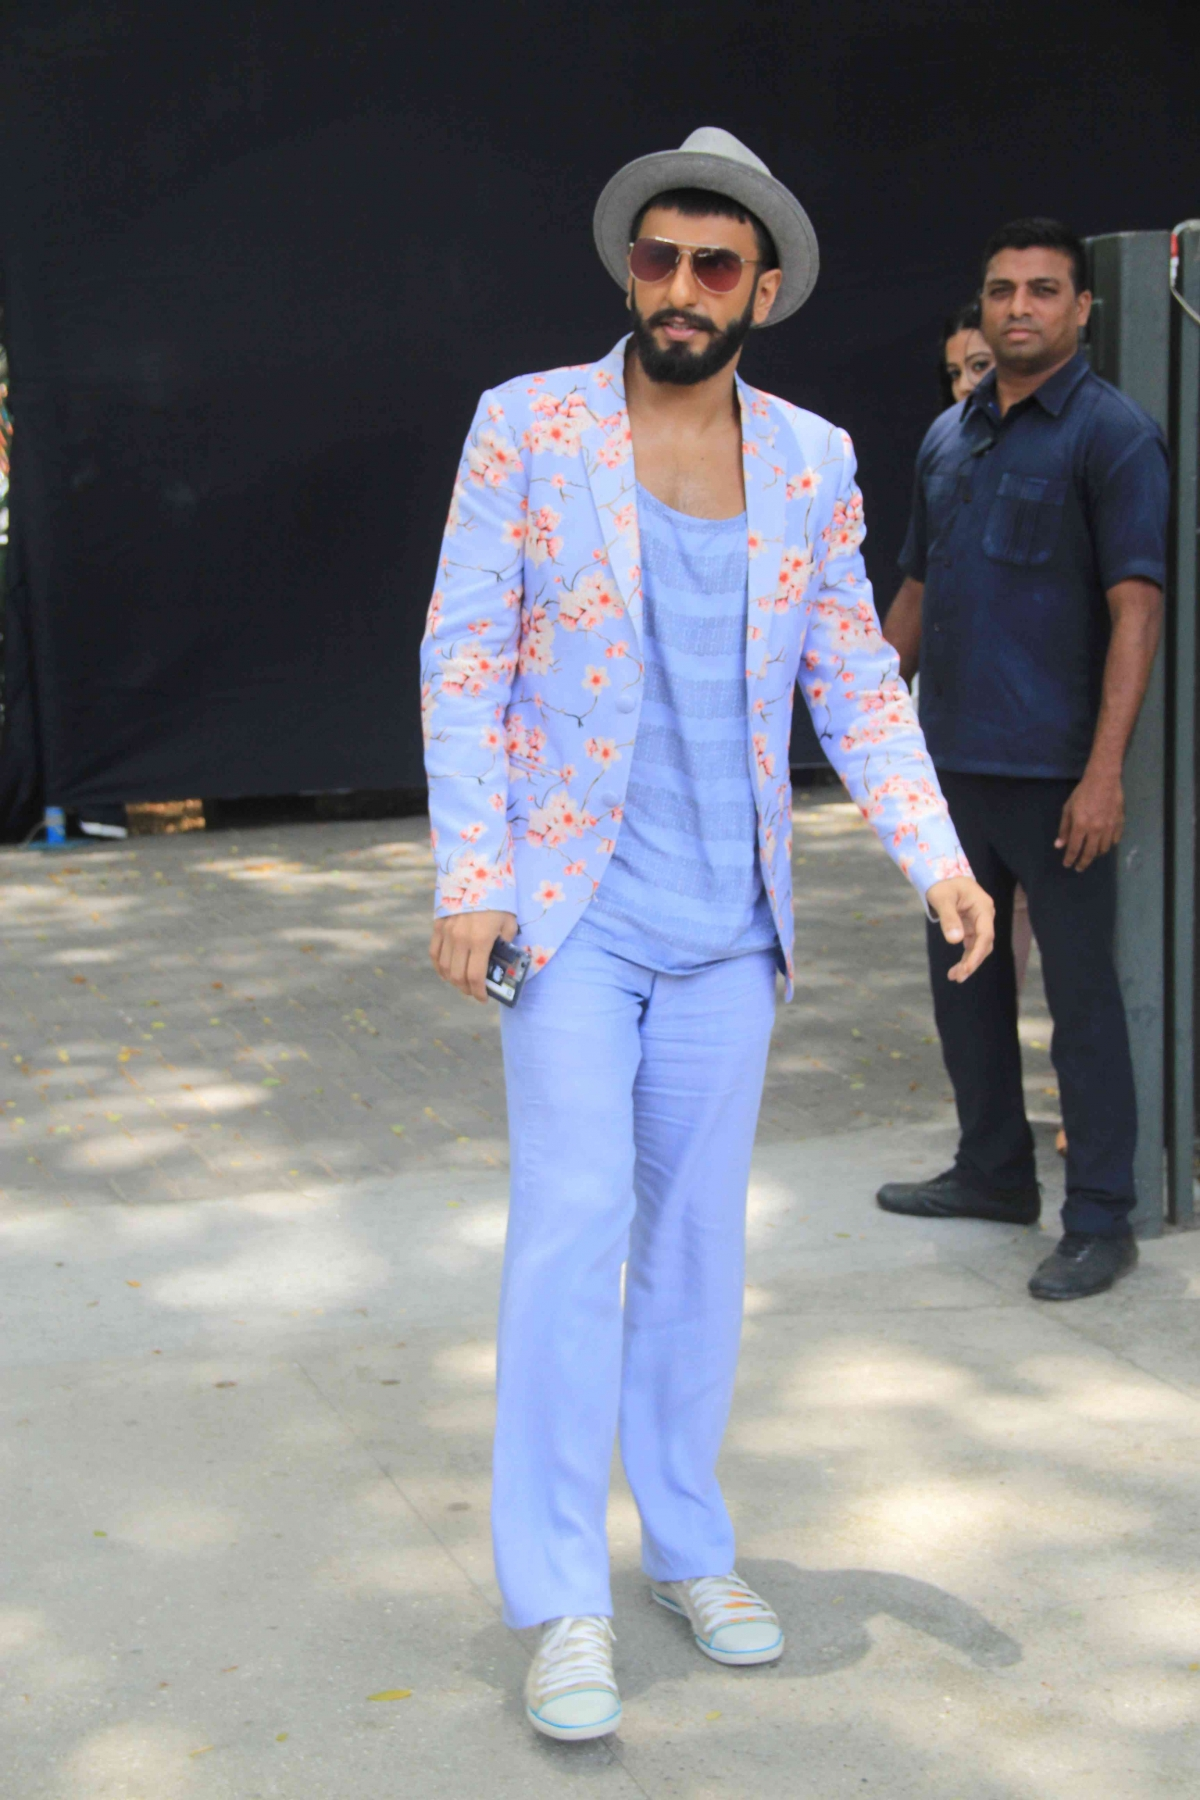 Public Appearances of Ranveer Singh in Weird Outfits [PHOTOS]